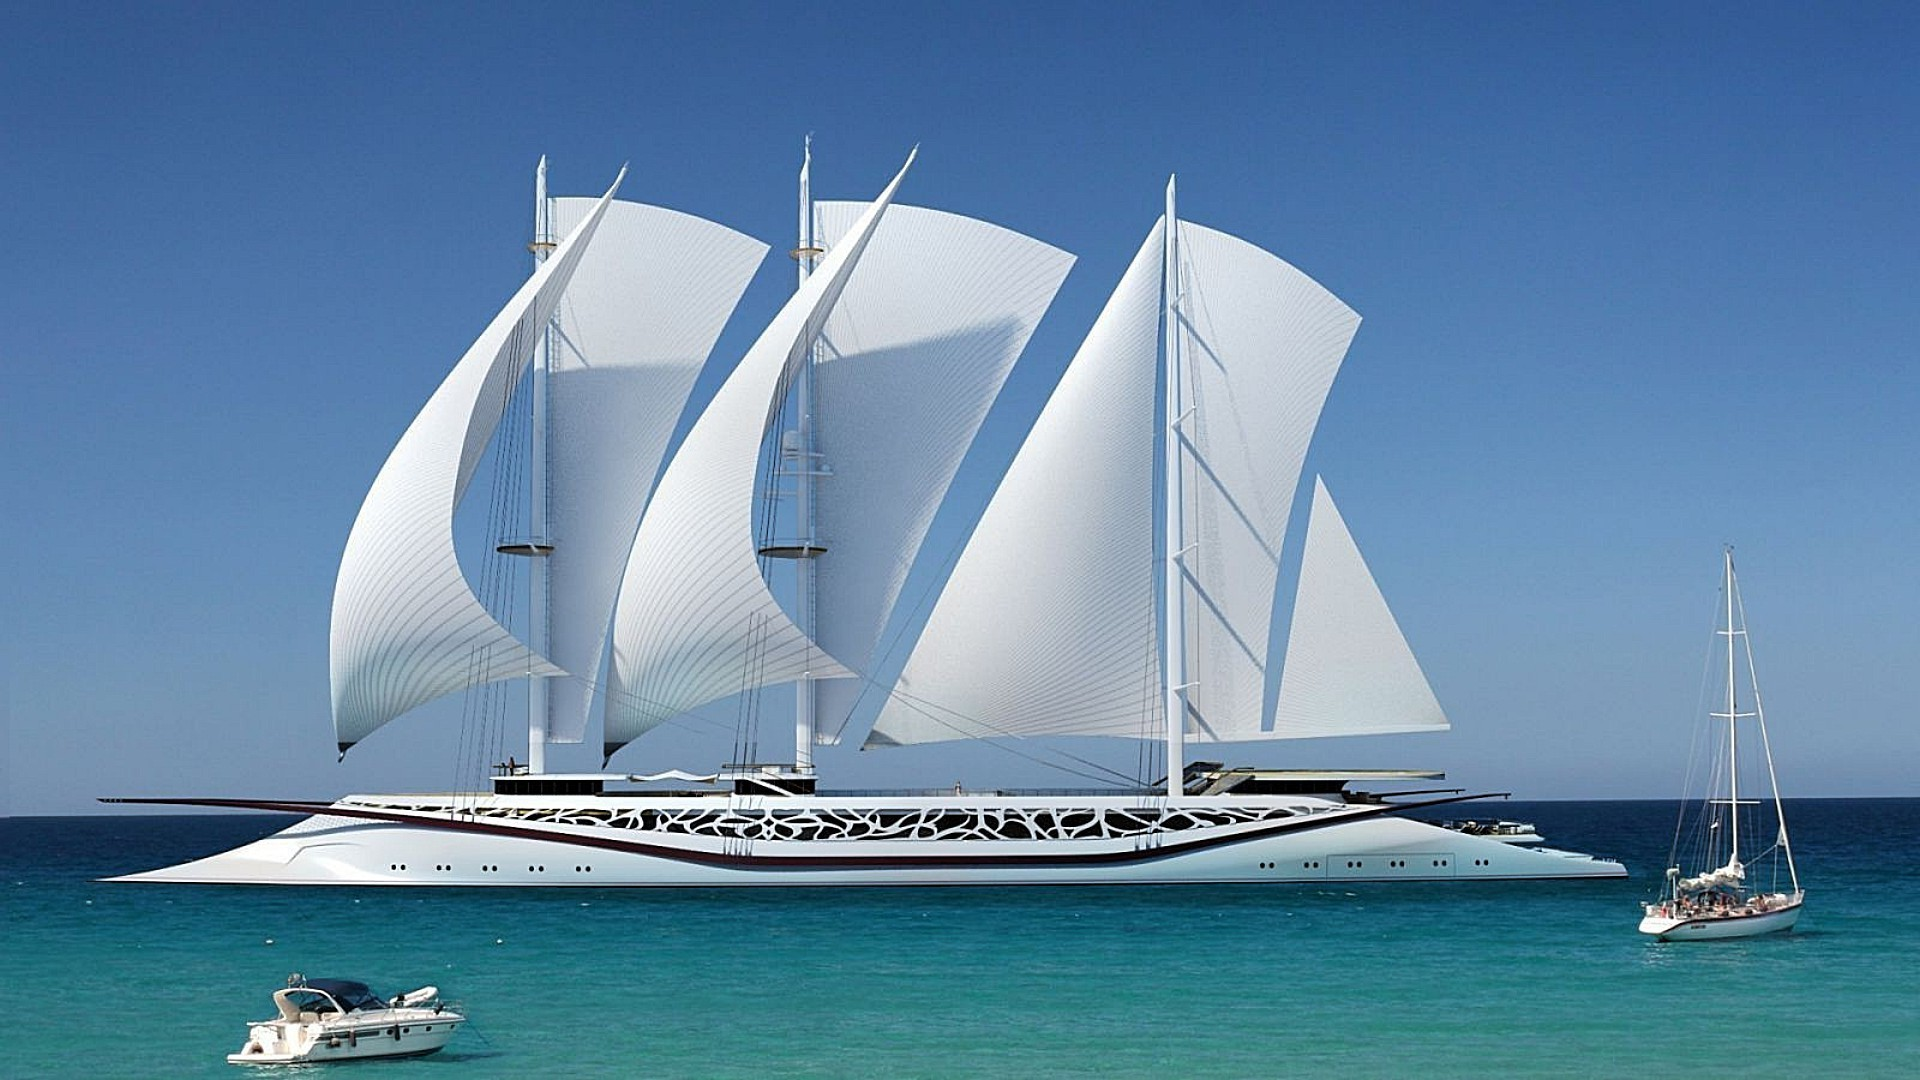 Titanic Ship 3d Wallpaper Free Download Yacht Android Wallpapers For Free